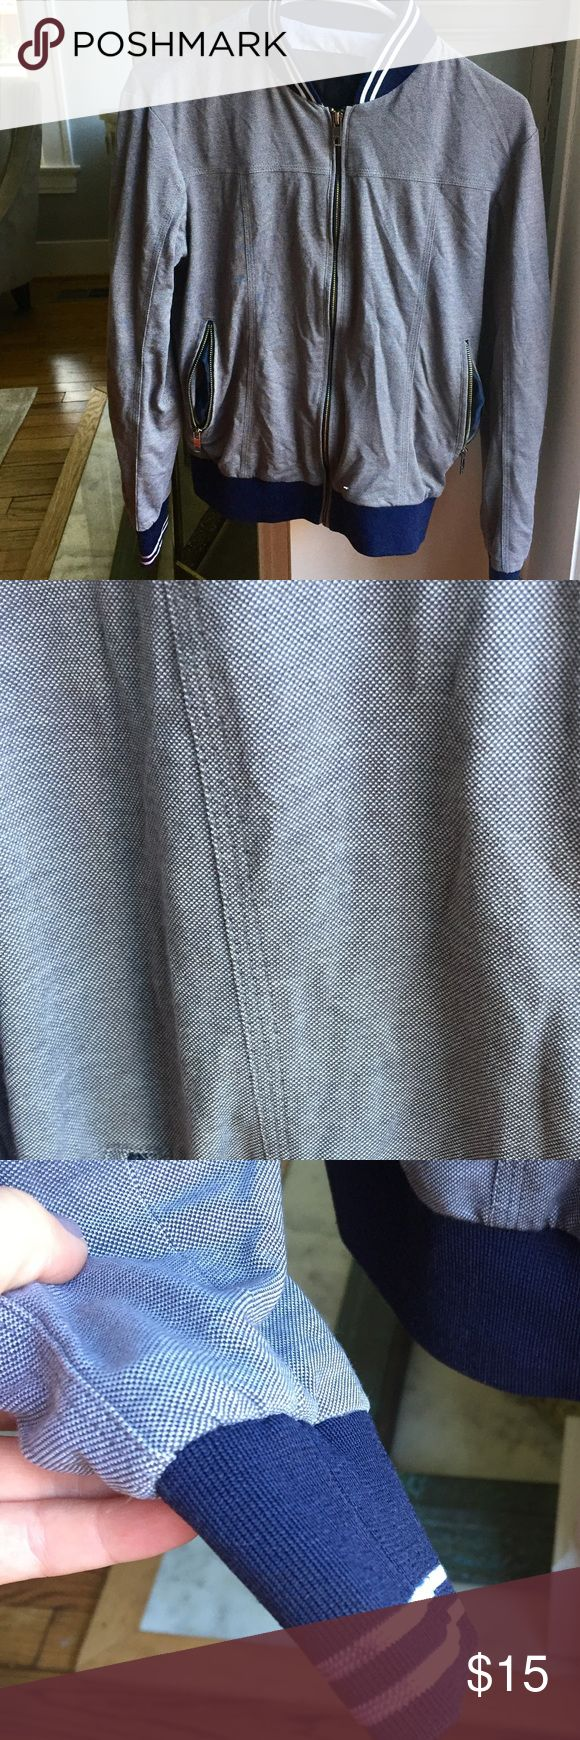 ZARA Men's Jacket size small. Some wear; has a couple of small stains as well as a stain on the sleeve. Zara Jackets & Coats